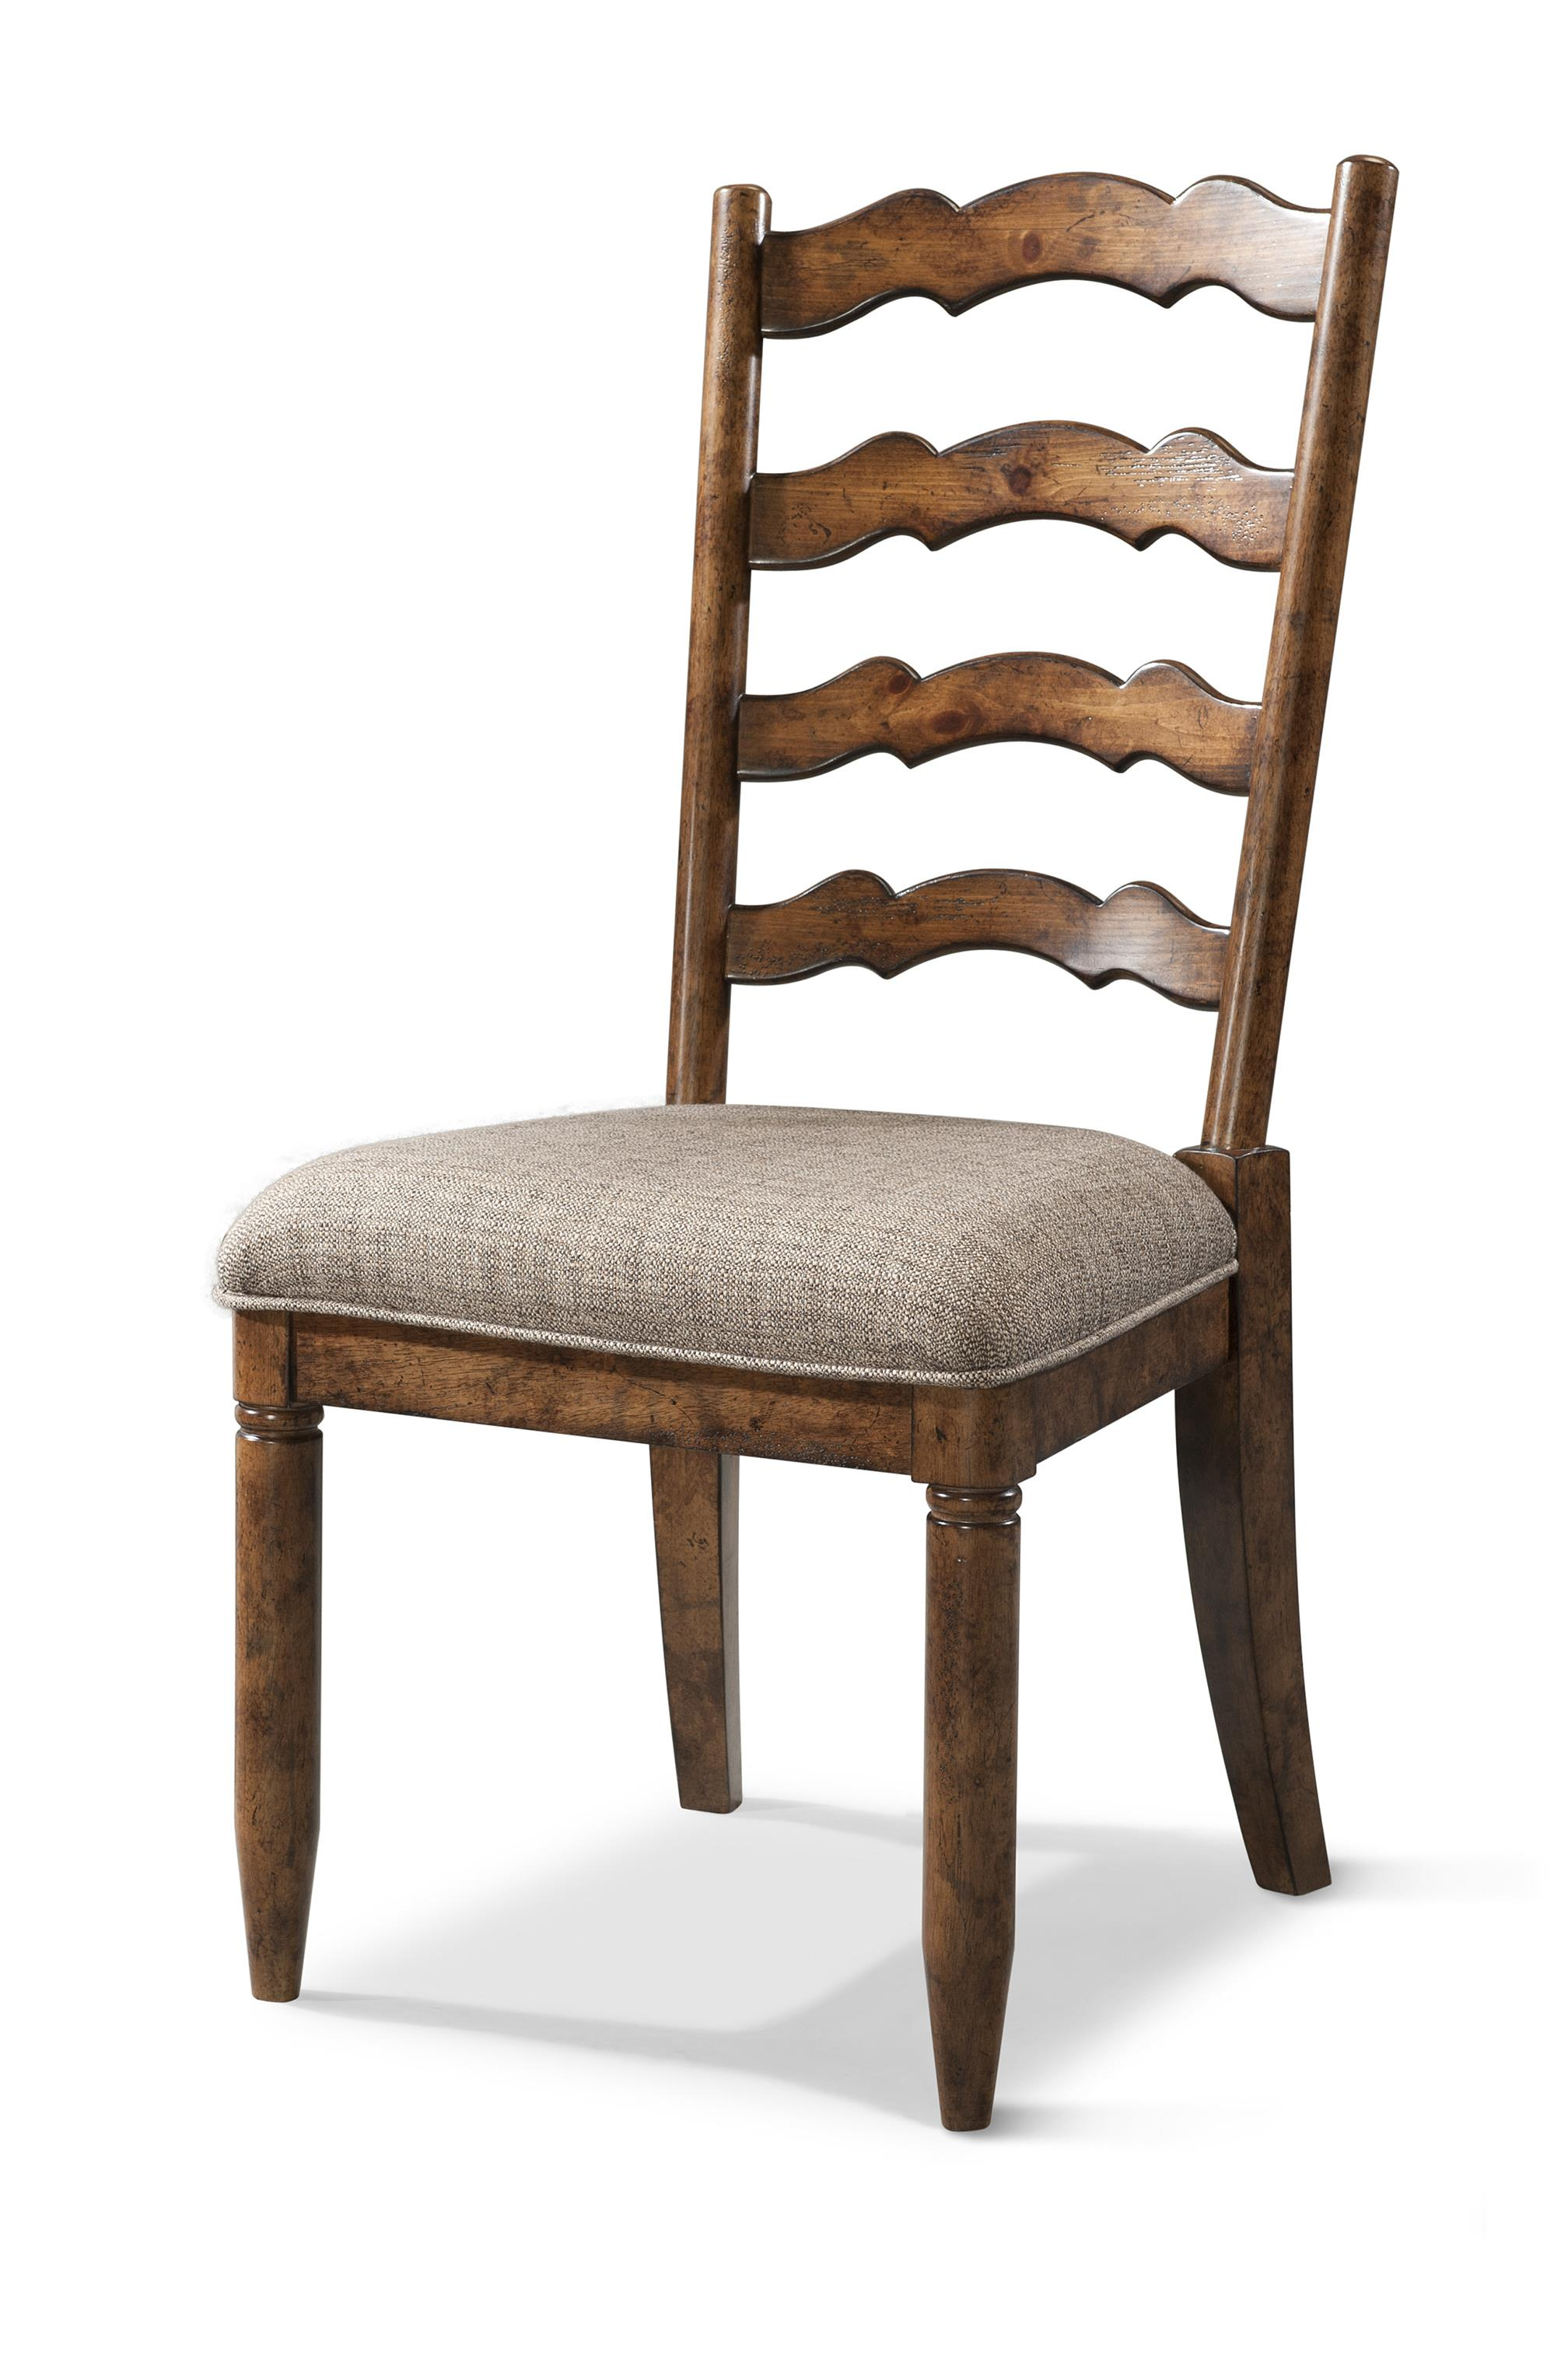 Easton Collection Farmhouse Ladderback Side Chair - Item Number: 436-900 DRC